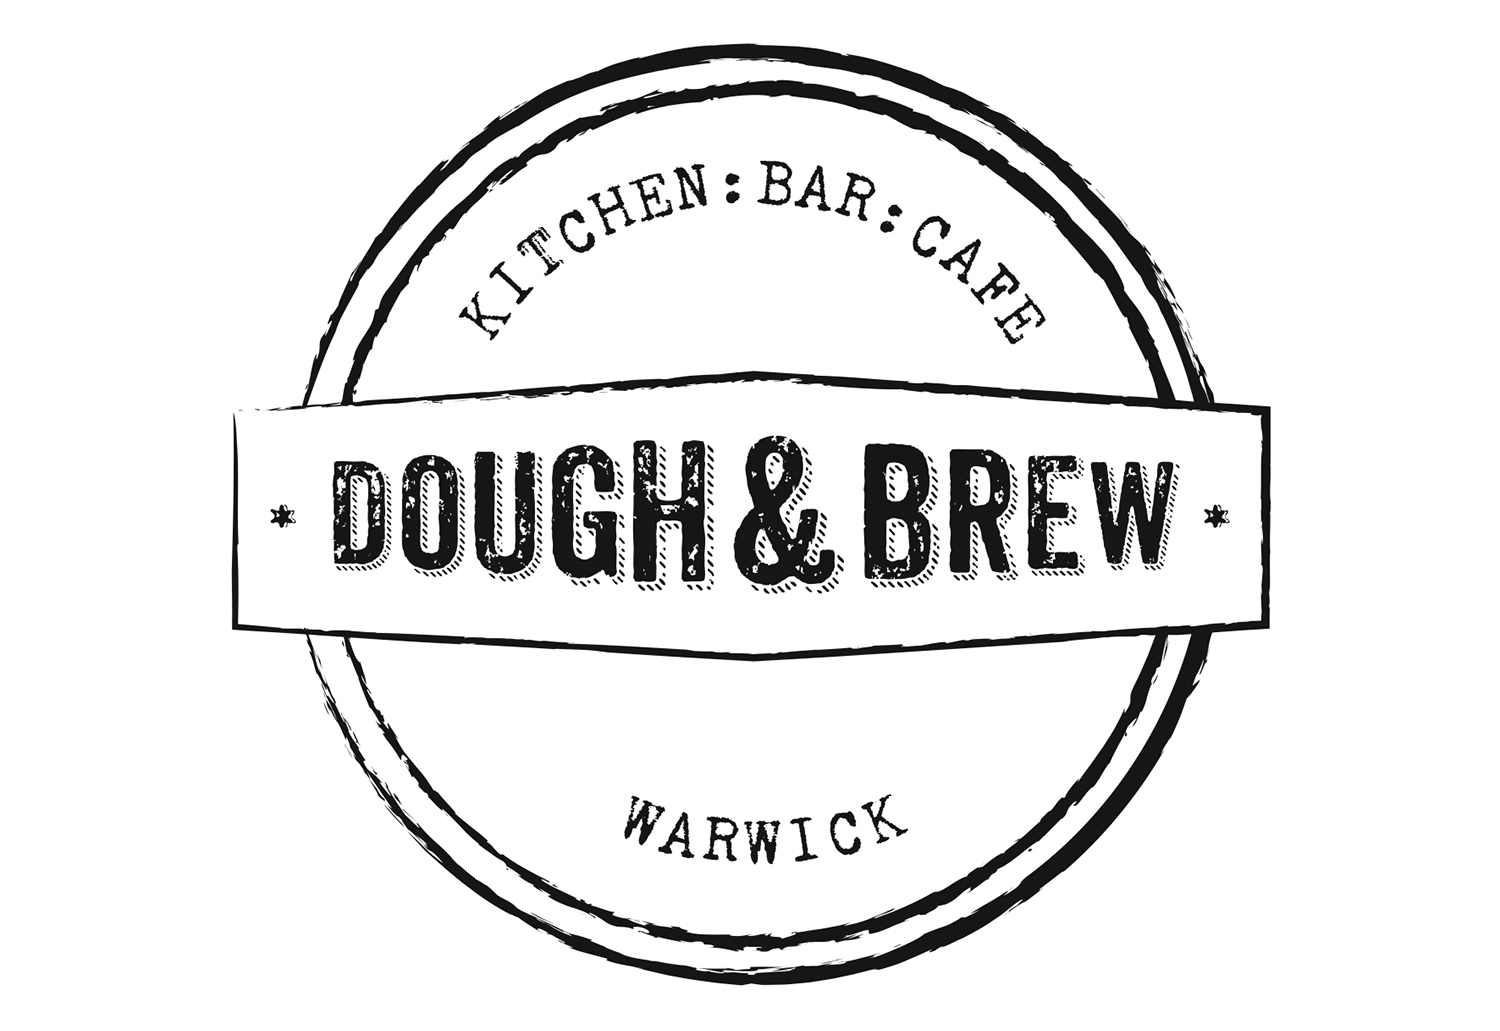 Dough & Brew's final brand identity, by The Usual Studio